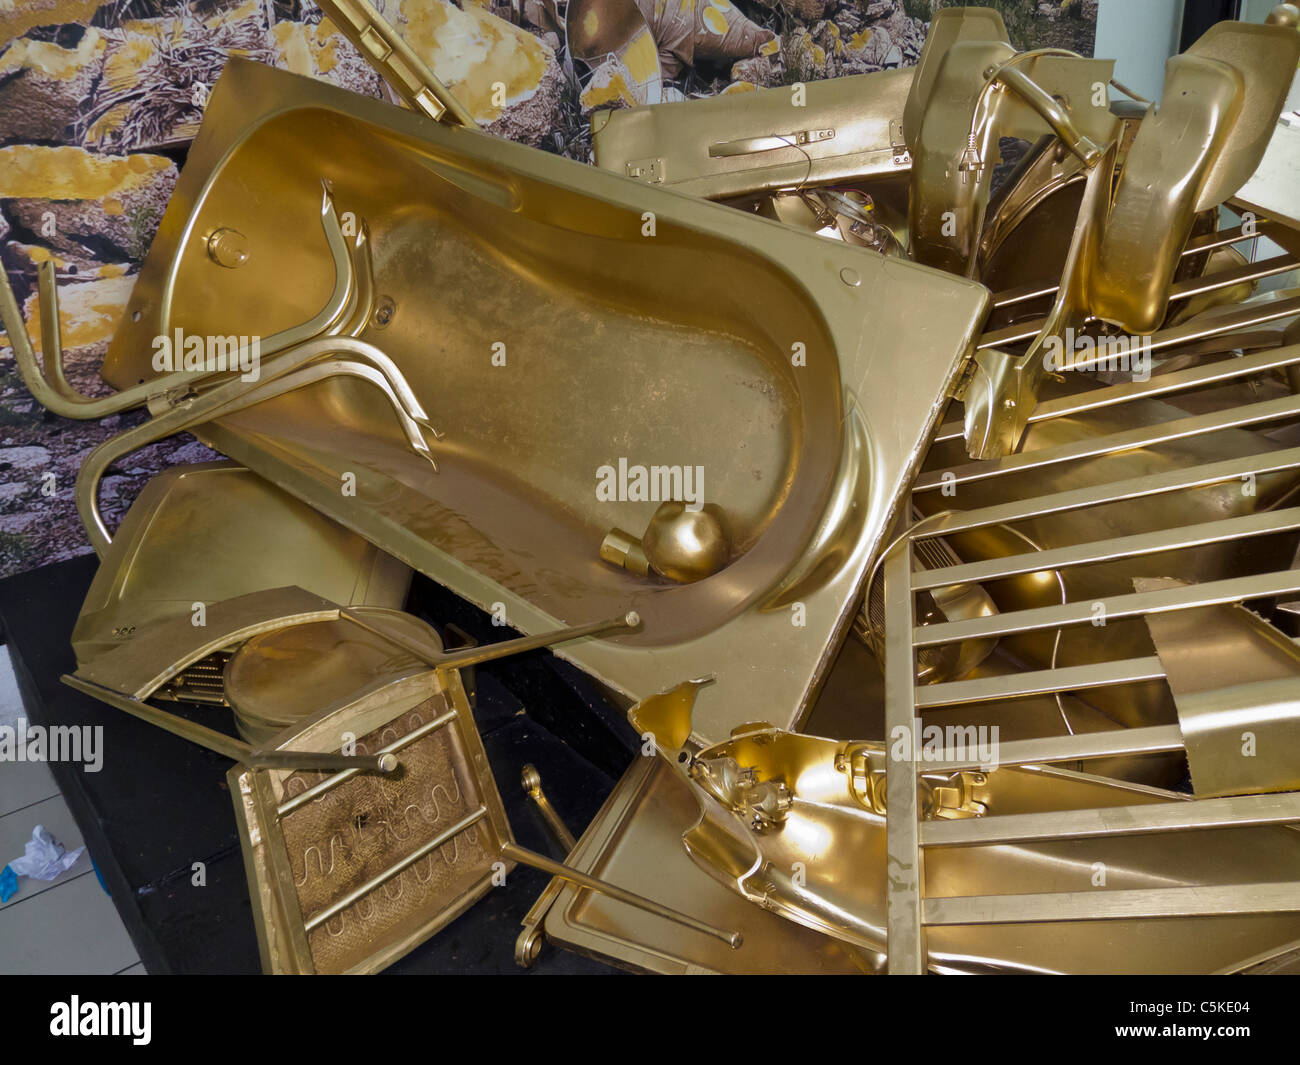 Surabaya Leroy Merlin Trash Modern Stock Photos Trash Modern Stock Images Alamy